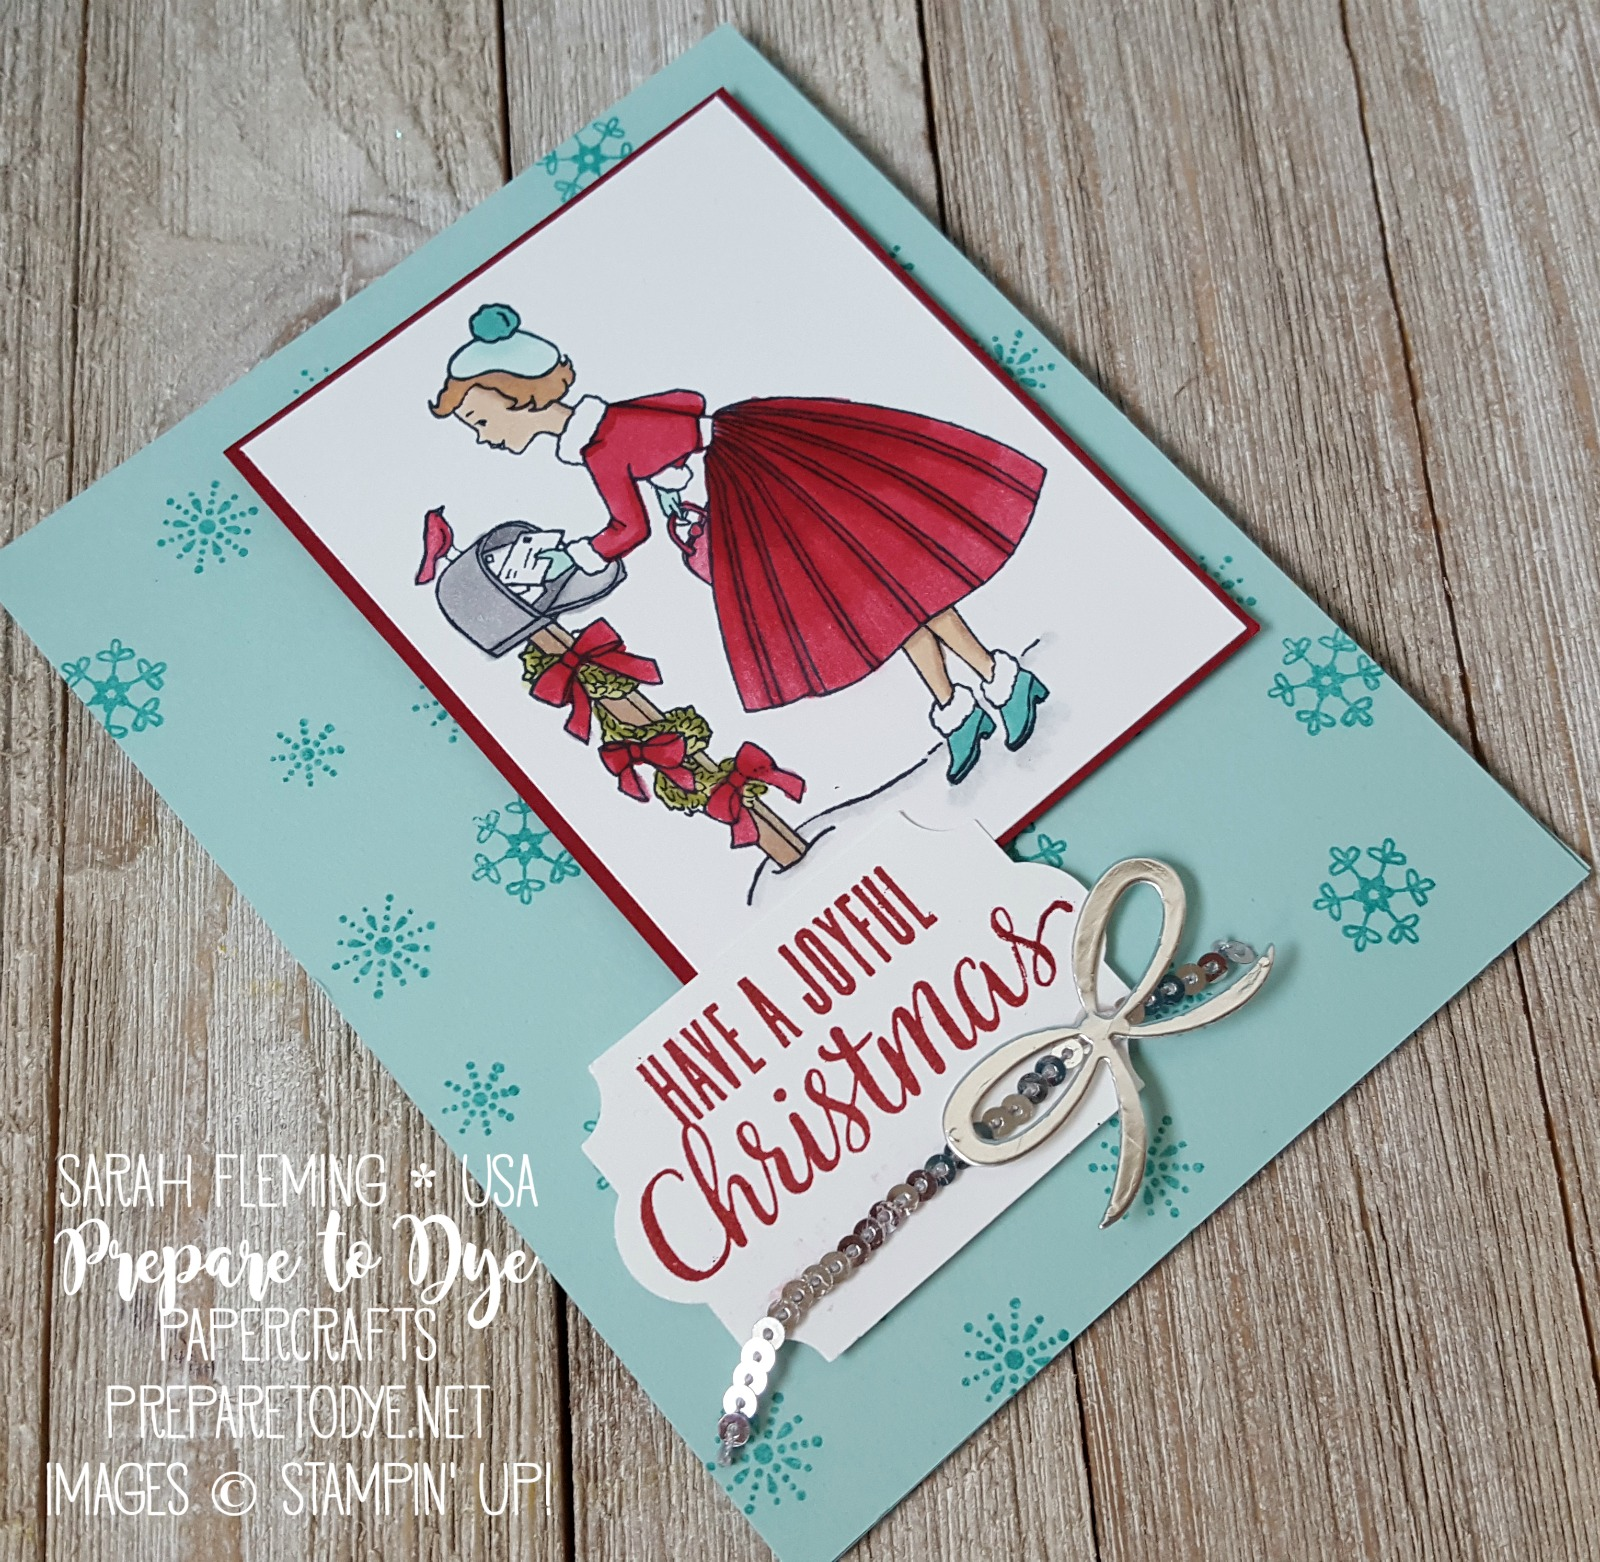 Stampin' Up! Christmas in the Making, Paper Pumpkin, and Merry Cafe stamps with Stampin' Blends alcohol markers - handmade Christmas card - Sarah Fleming - Prepare to Dye Papercrafts